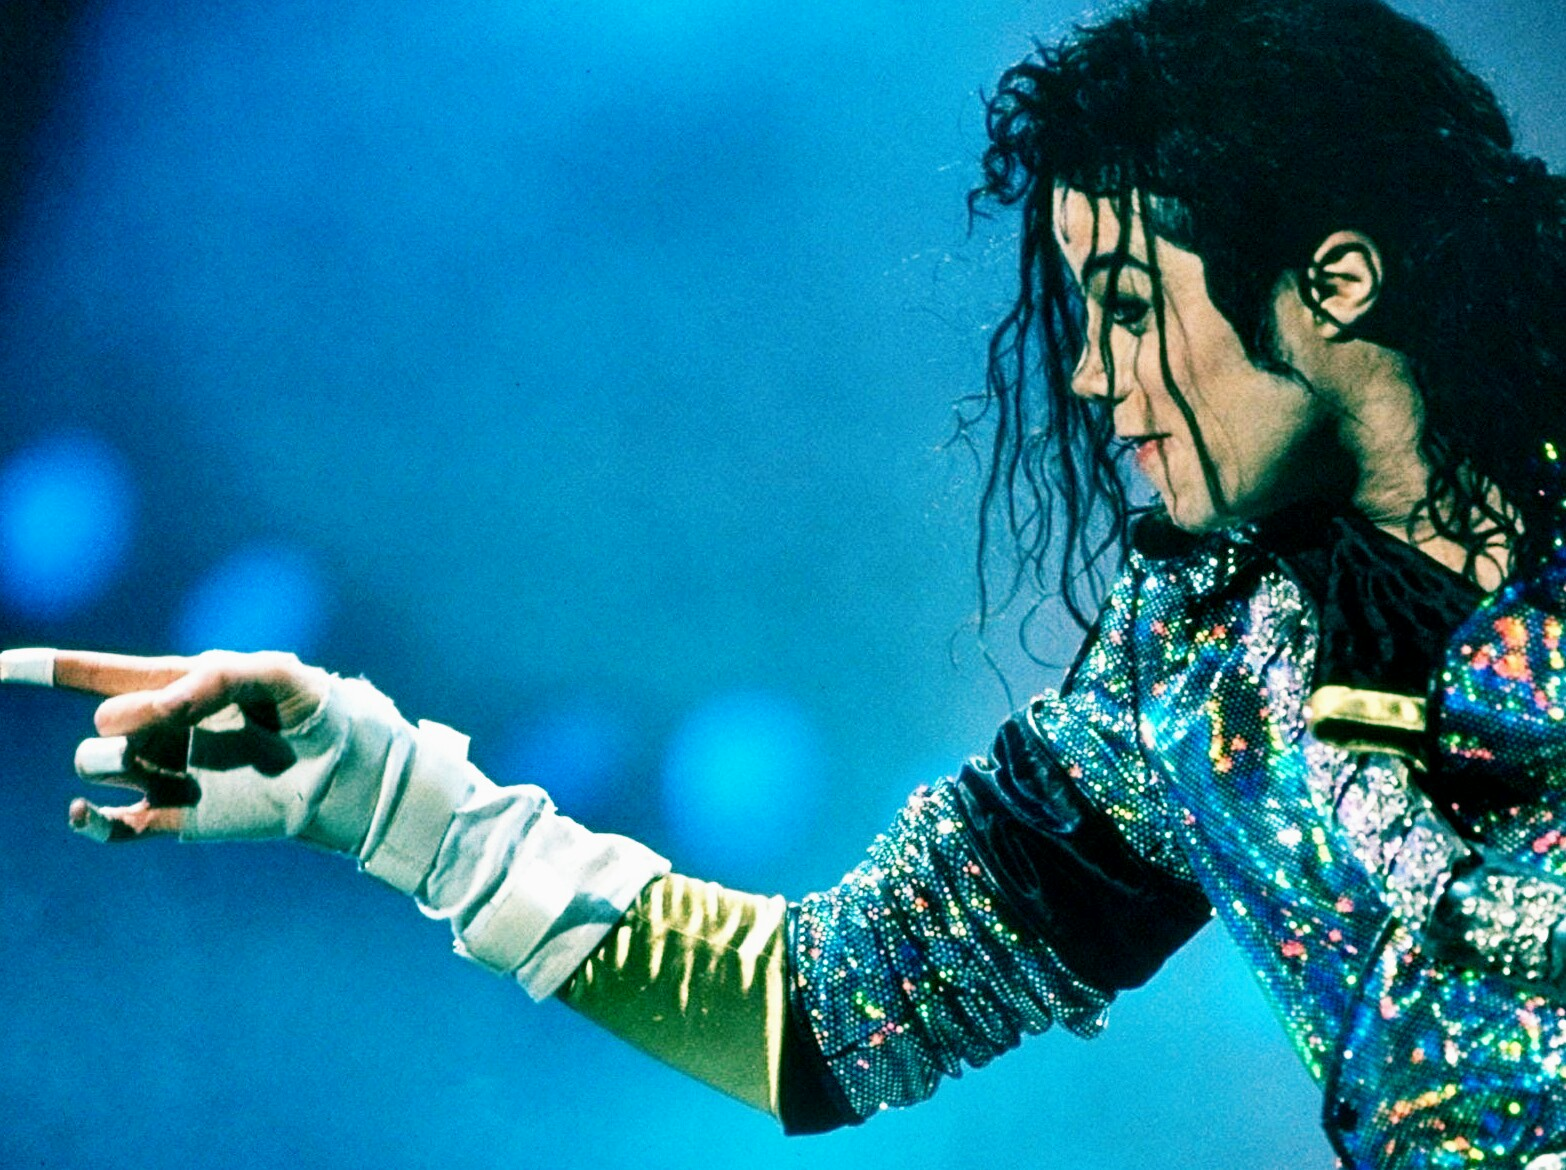 worldwide michael jackson fans: michael jackson wallpapers hd - for